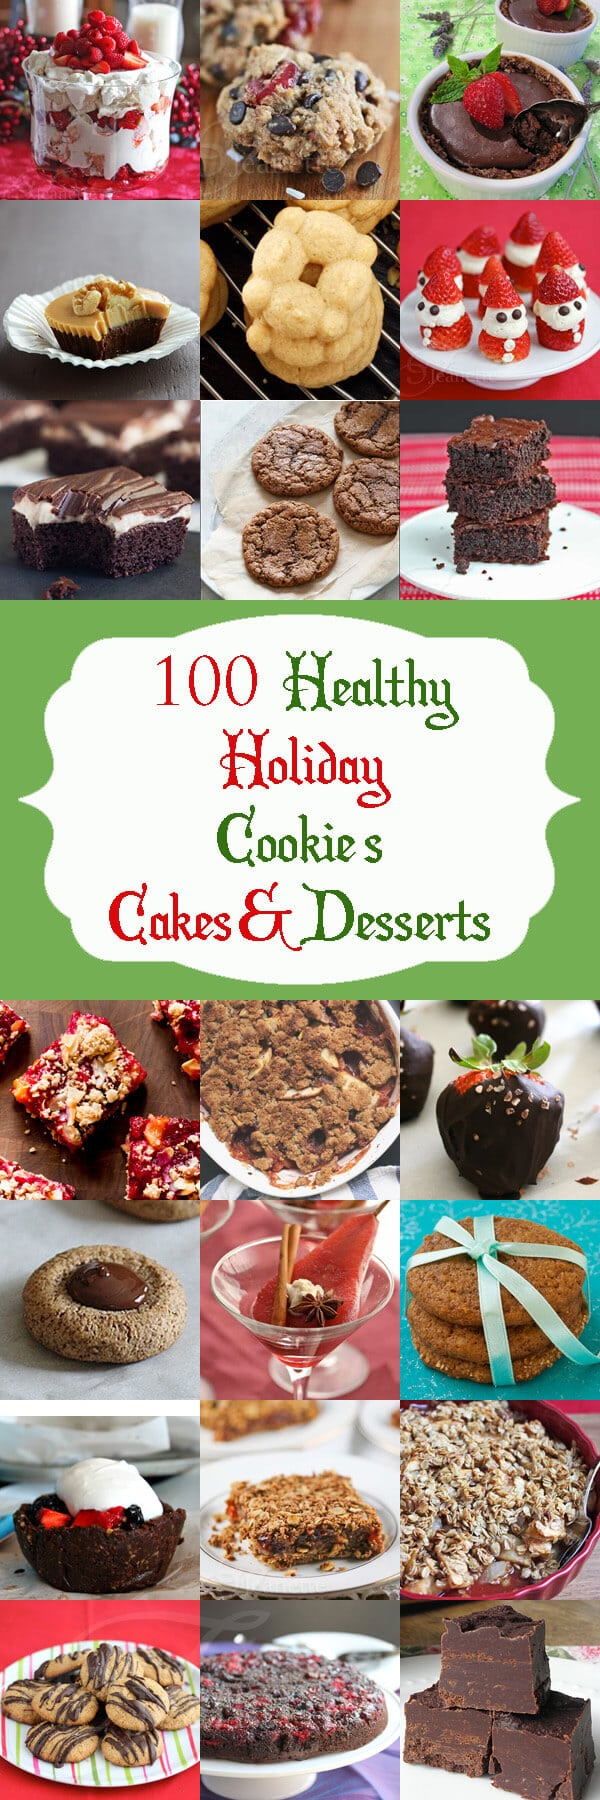 100 Healthy Christmas and Holiday Cookies, Cakes & Desserts. Favorite cookies, cakes, tarts and sweet treats made healthier and lighter.